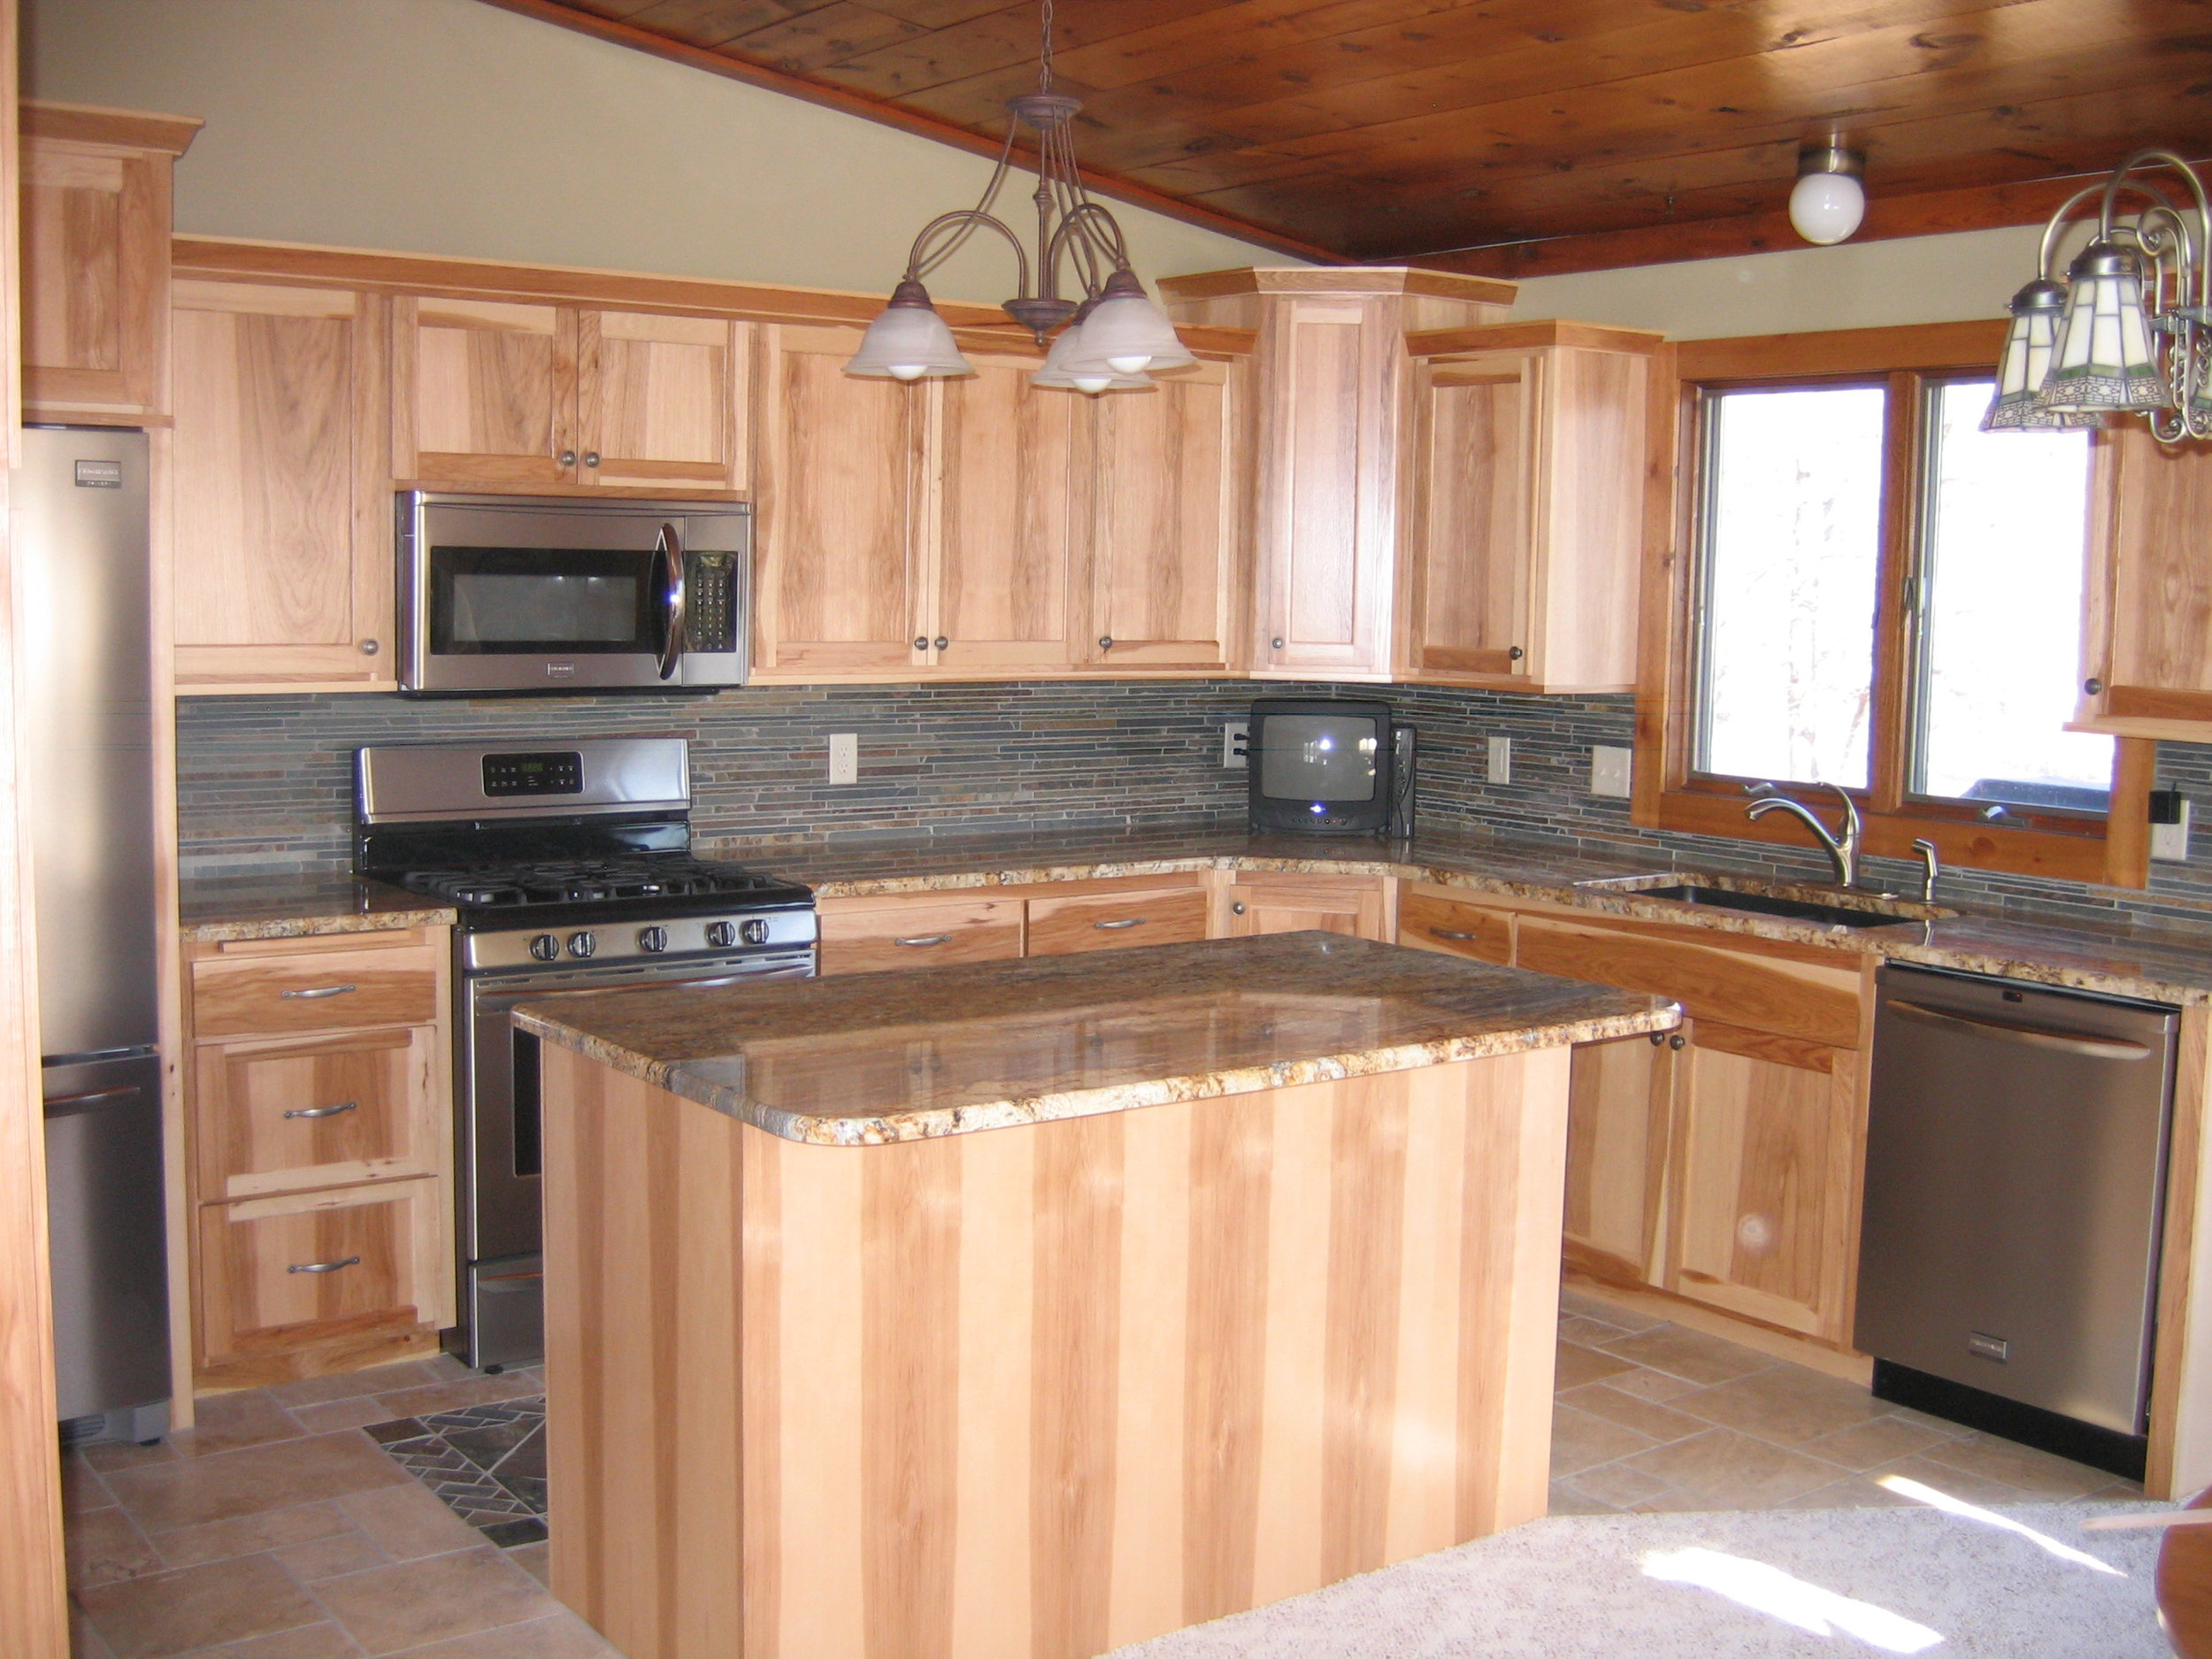 kitchen 004.JPG